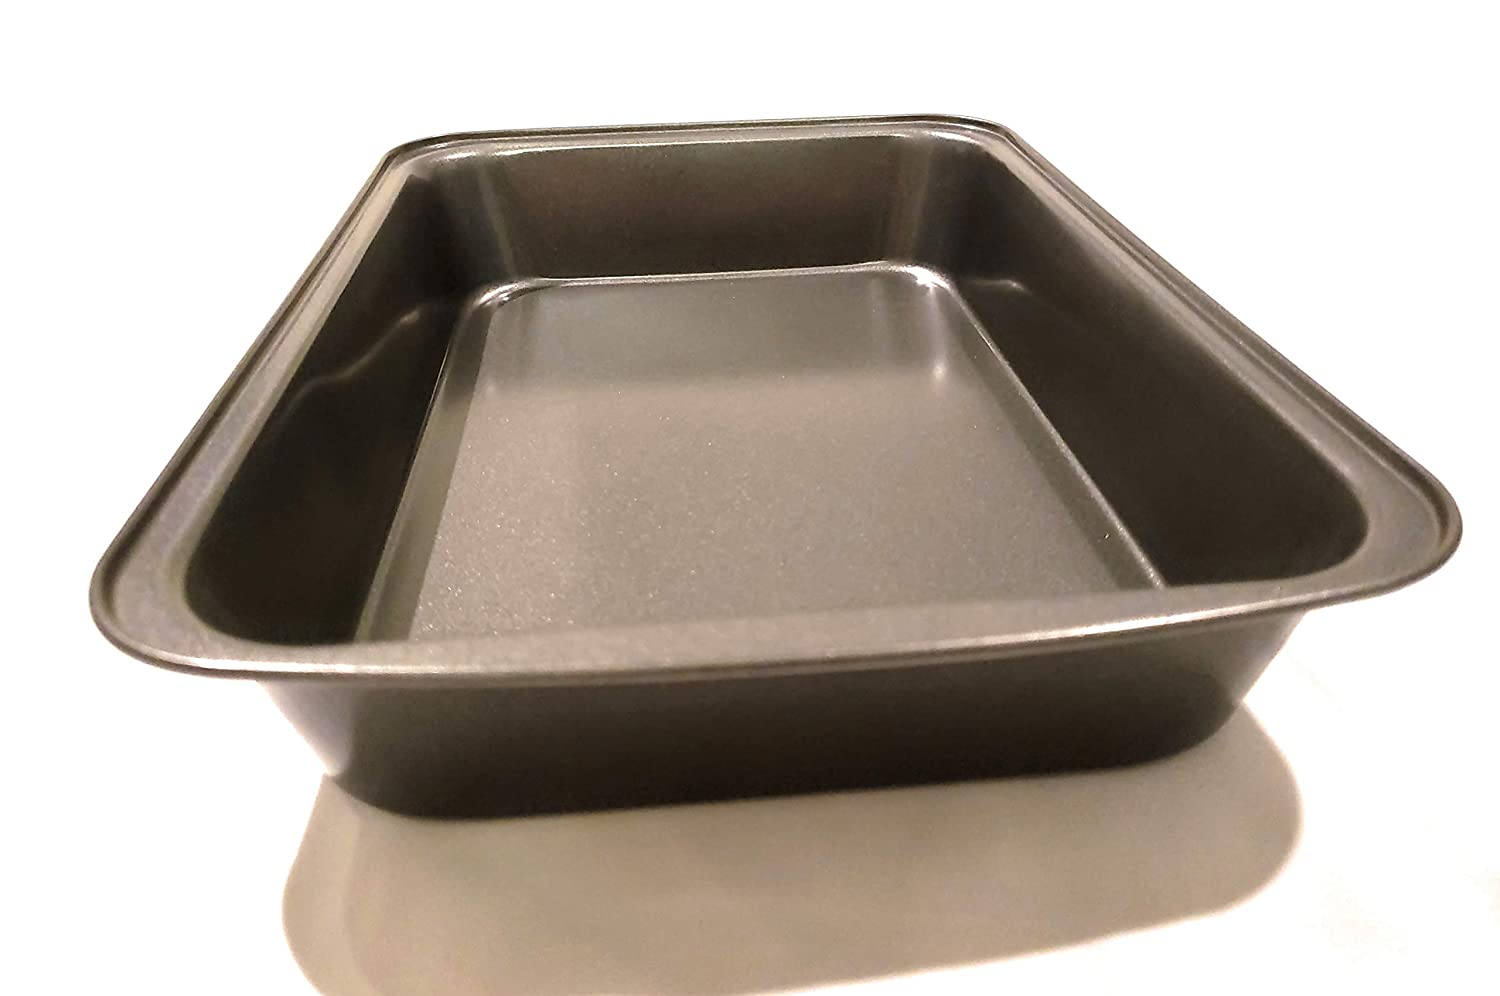 April Supply 9 inch by 14 inch Detroit Style Deep Dish Square Pizza Pan with Sauce Ladle Sicilian Rectangular Bake Dish with Stainless Steel Ladle